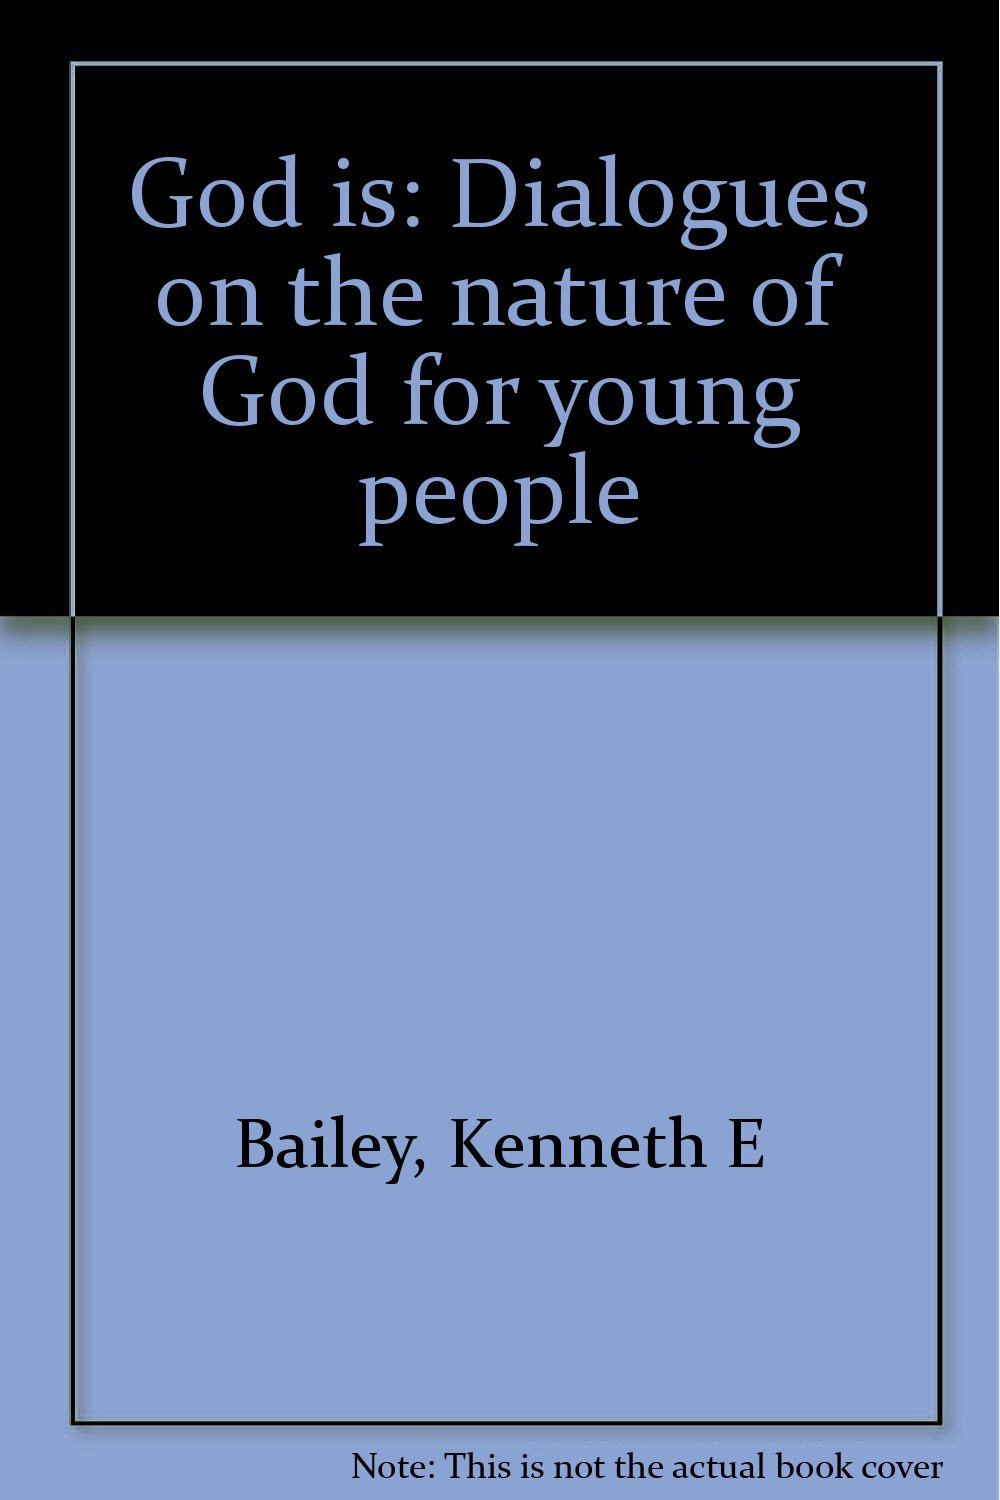 God Is: Dialogues On The Nature Of God For Young People: Kenneth E Bailey:  9780878081493: Amazon: Books